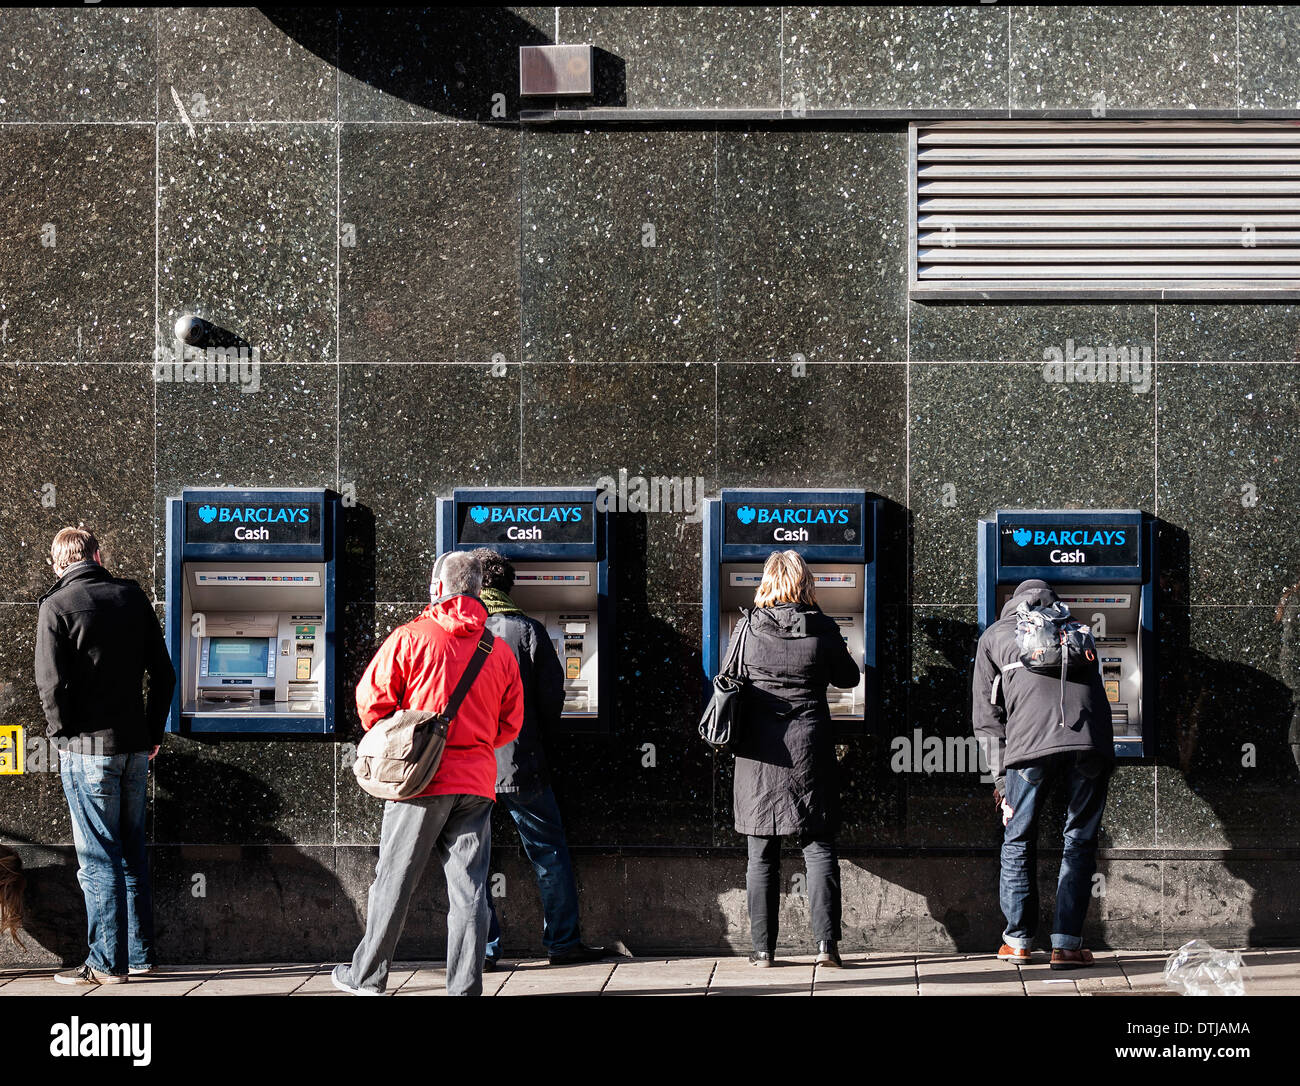 Customers withdrawing money from Barclays ATM. - Stock Image